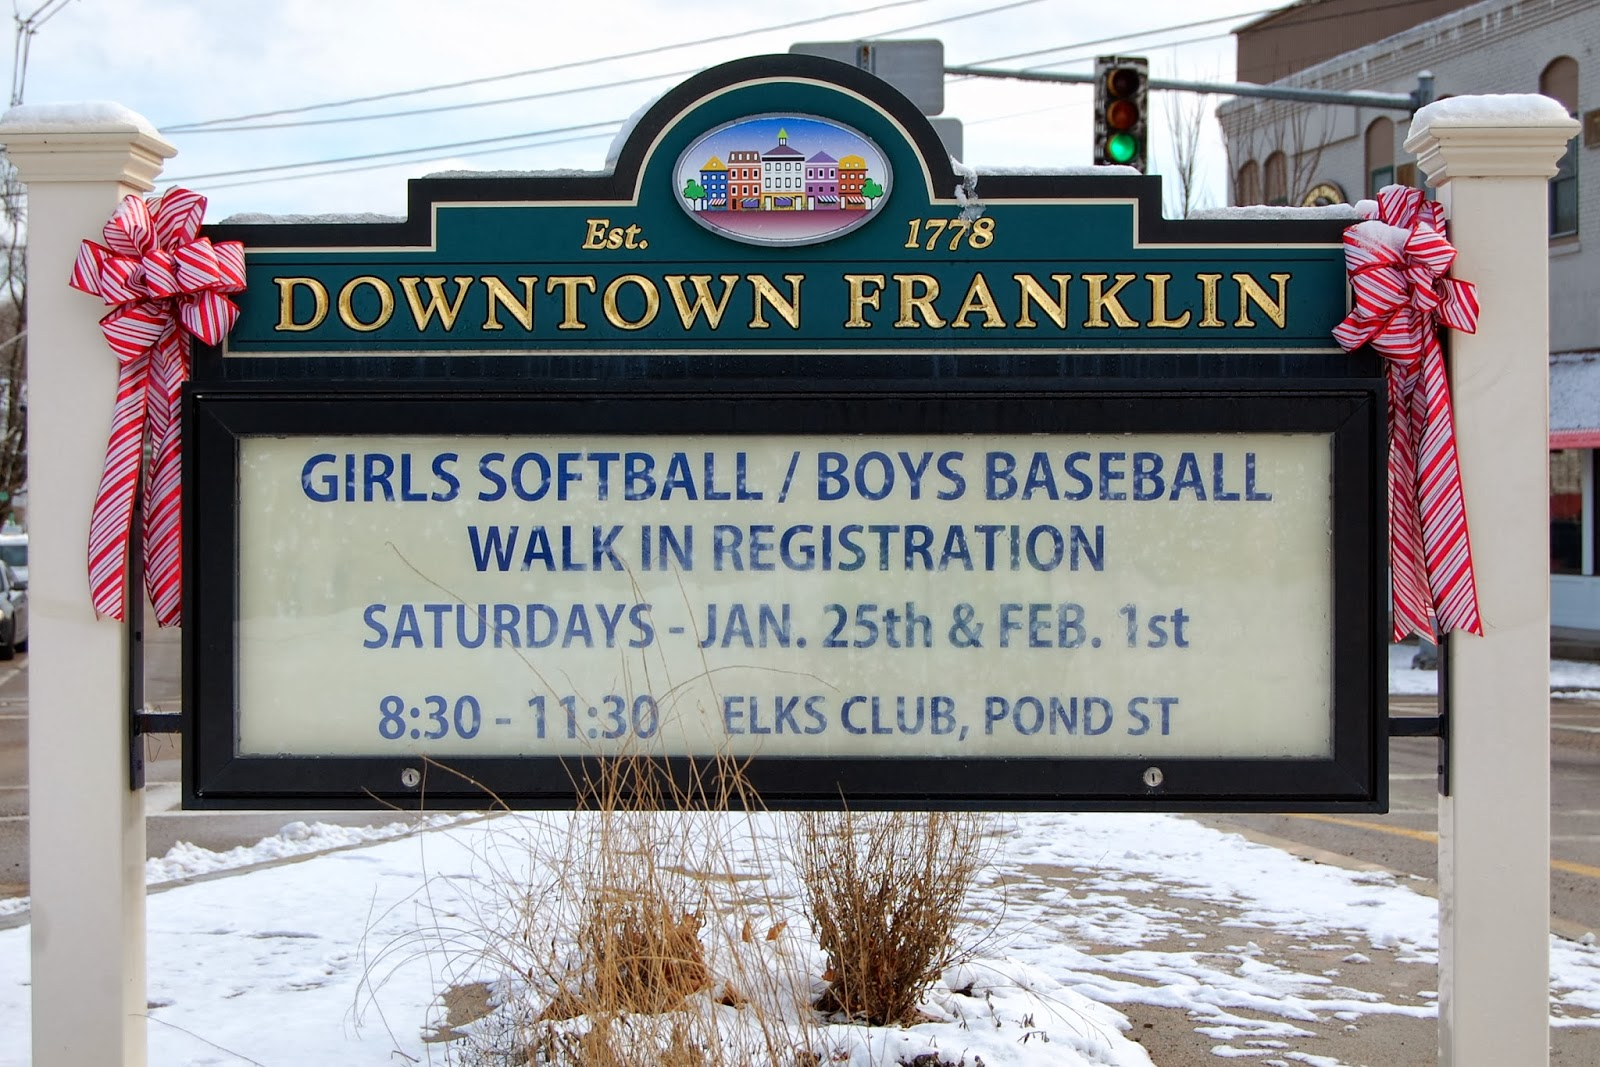 Girls Softball - Boys Baseball Registration